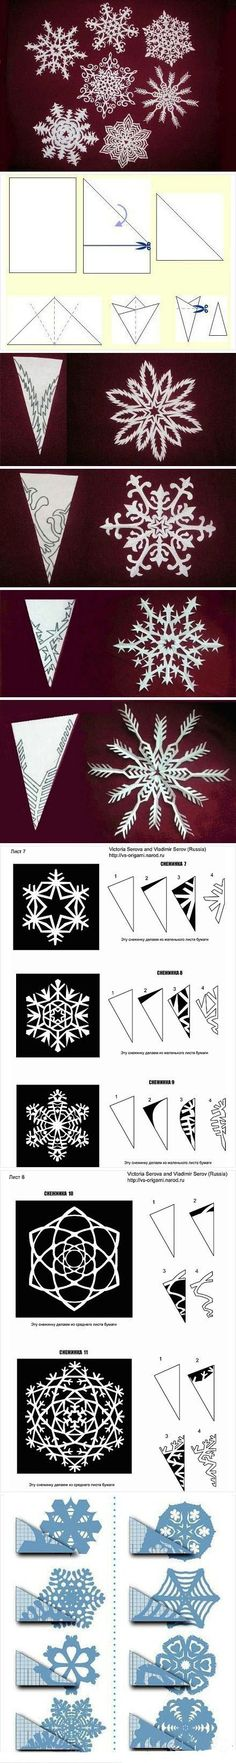 Christmas window cuttings about 16 inches in diameter for 16 lighted snowflake christmas window silhouette decoration